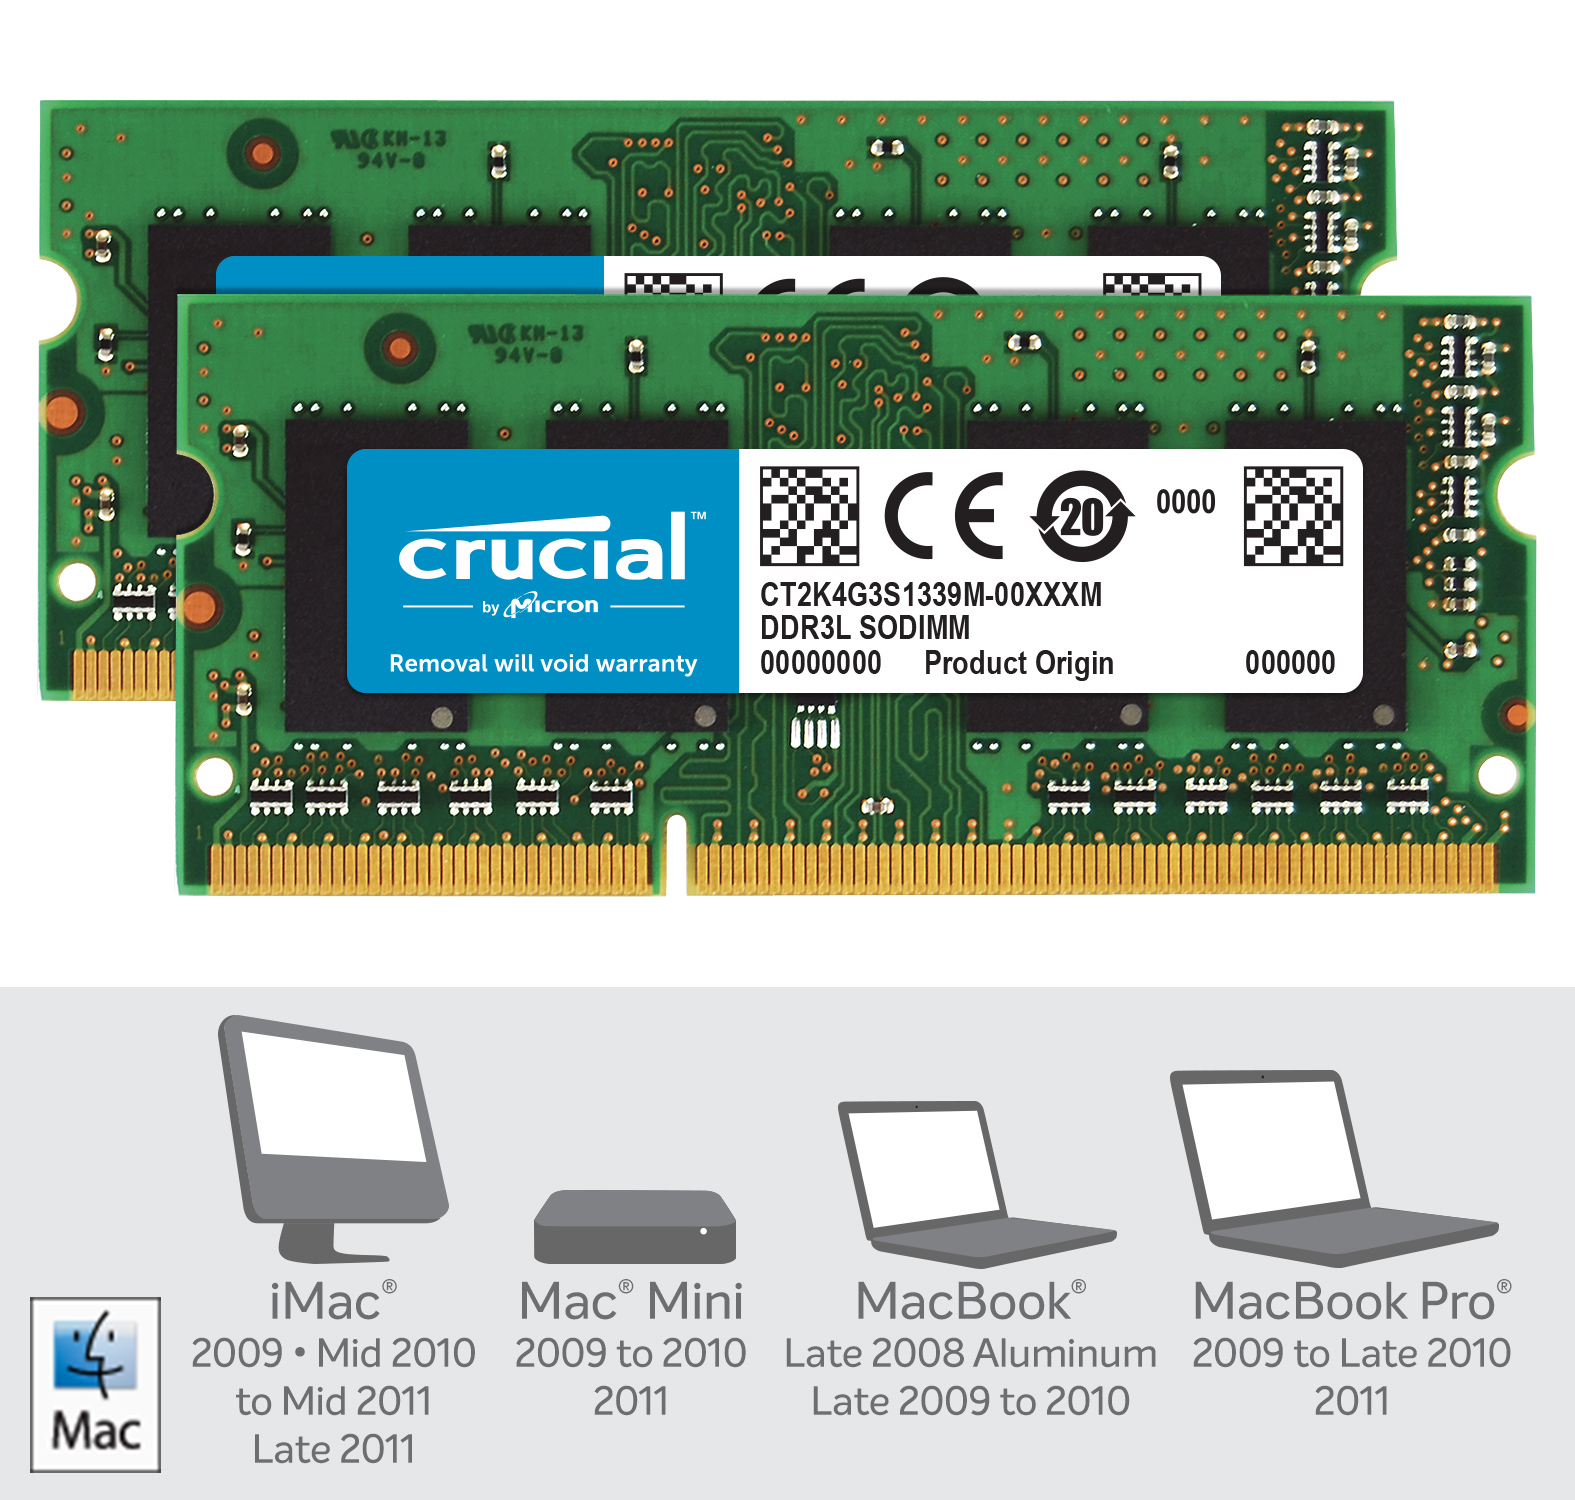 Crucial 8GB Kit (2 x 4GB) DDR3L-1333 SODIMM Memory for Mac- view 2